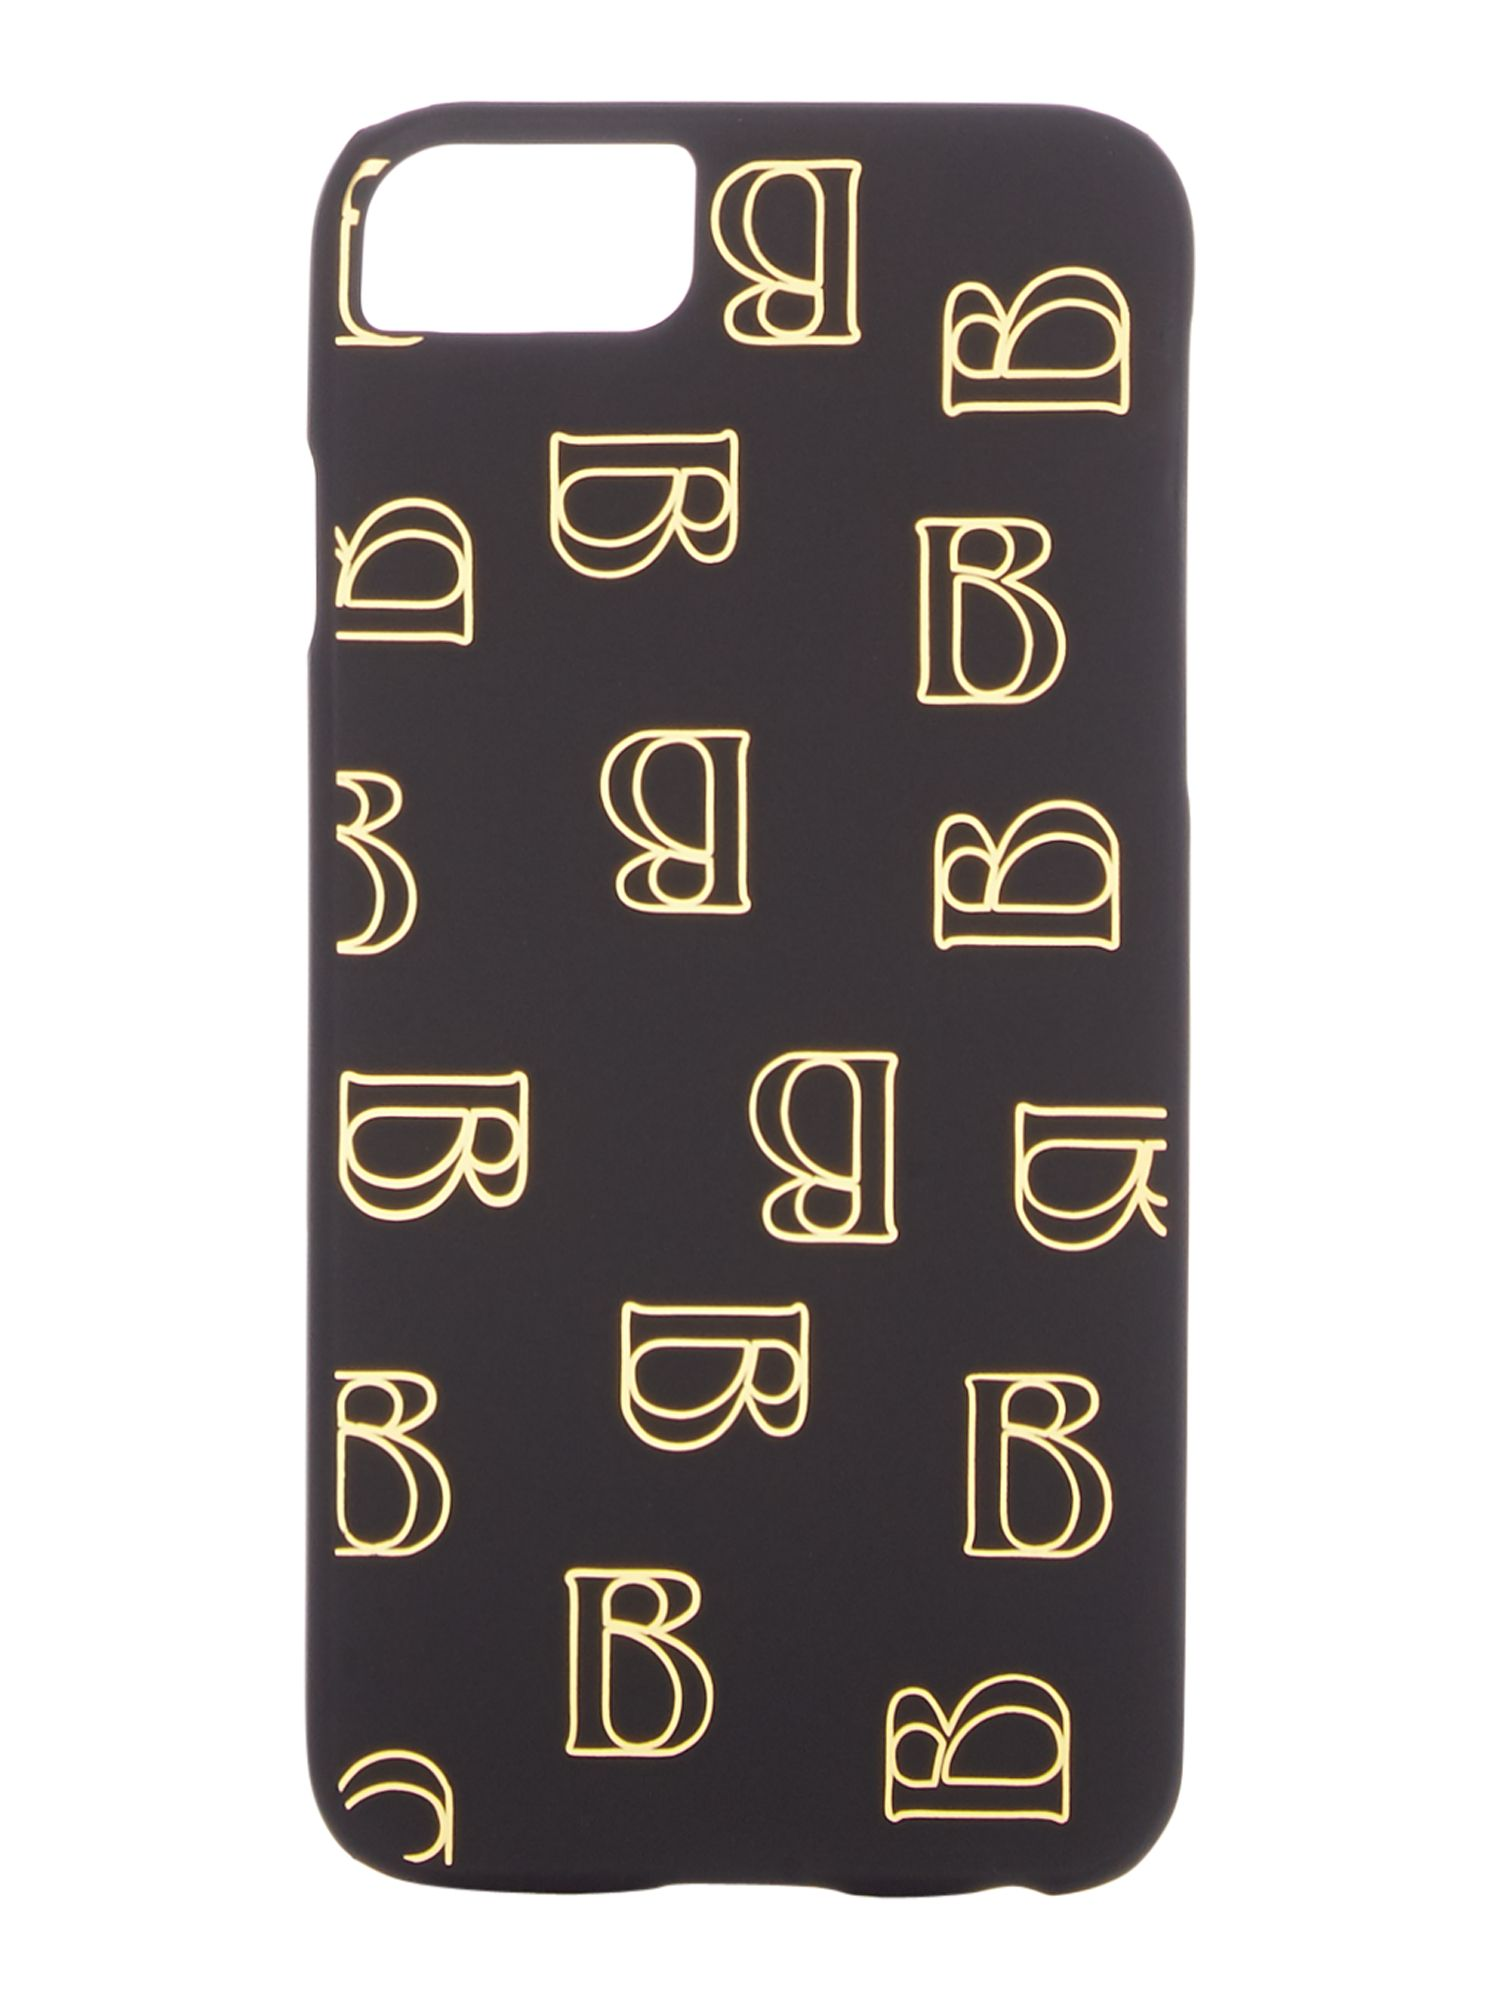 Biba B logo iPhone 6 and 7 case, Black